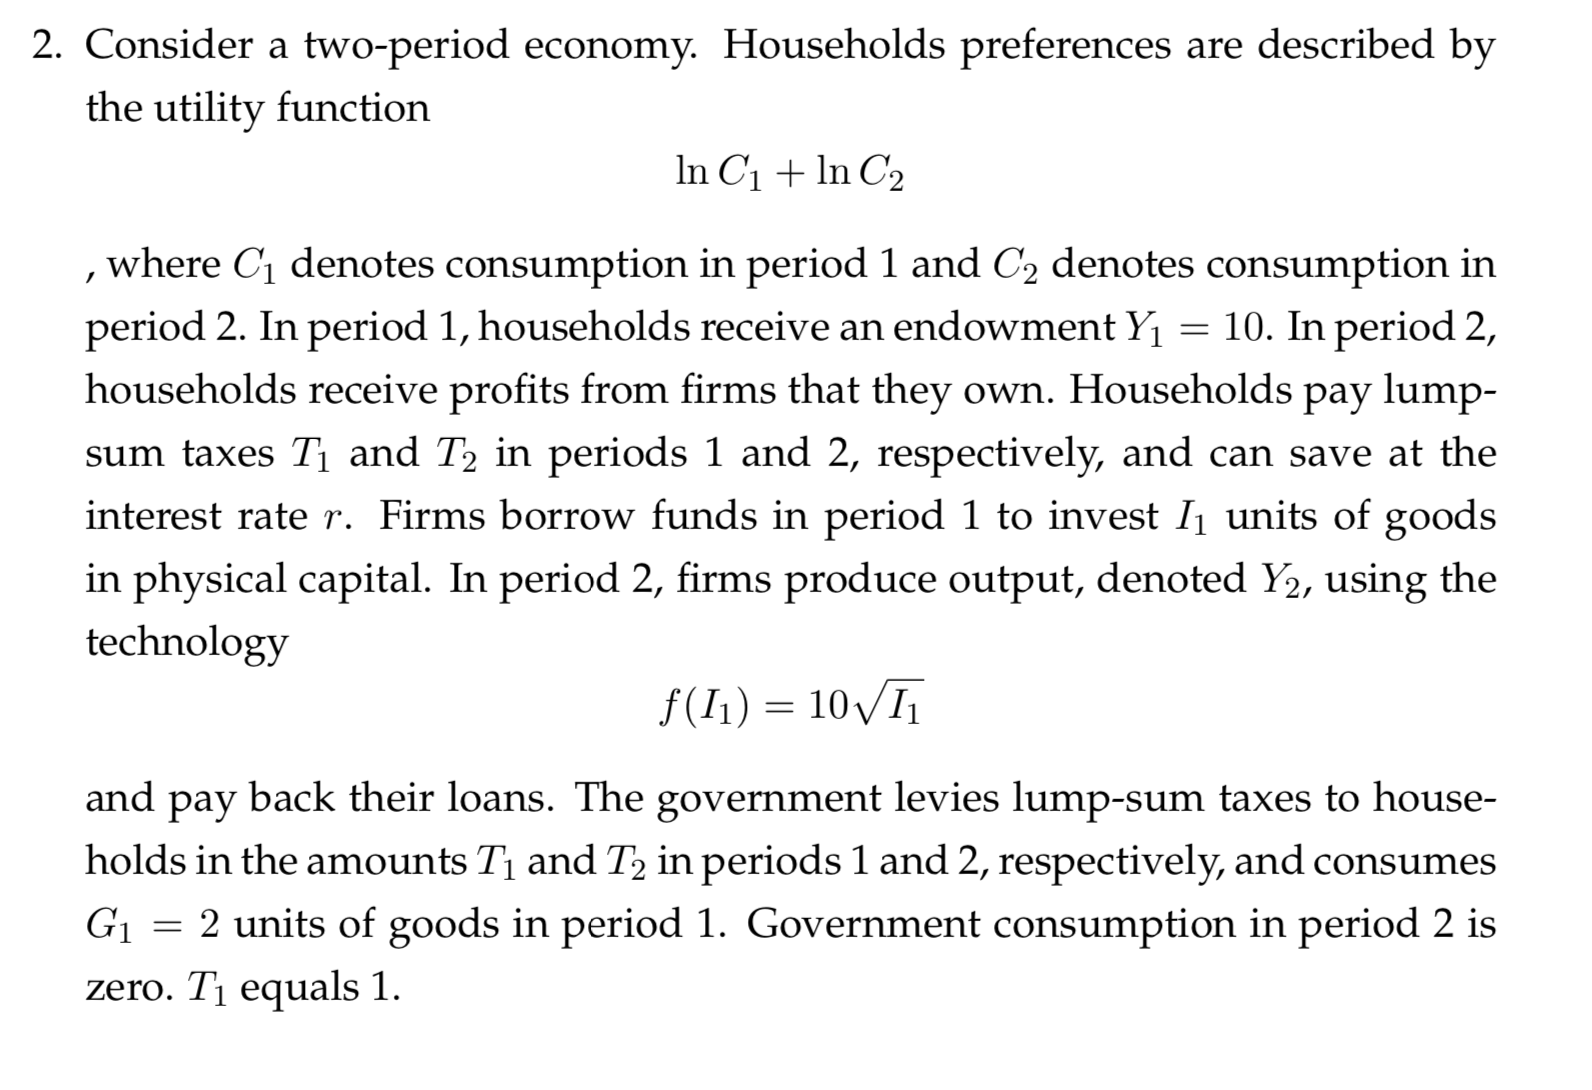 2. Consider a two-period ecornomy. Households preferences are described by the utility function In C1n C2 , where C1 denotes consumption in period 1 and C2 denotes consumption in period 2. In period 1, households receive an endowment Y households receive profits from firms that they own. Households pay lump- = 10. In period 2, sum taxes Ti and T2 in periods 1 and 2, respectively, and can save at the interest rate r. Firms borrow funds in period 1 to invest I1 units of goods in physical capital. In period 2, firms produce output, denoted Y2, using the technology f(I1) 10I and back their loans. The government levies lump-sum taxes to house- рay holds in the amounts Ti and T2 in periods 1 and 2, respectively, and consumes G 2 units of goods in period 1. Government consumption in period 2 is zero. T1 equals 1.